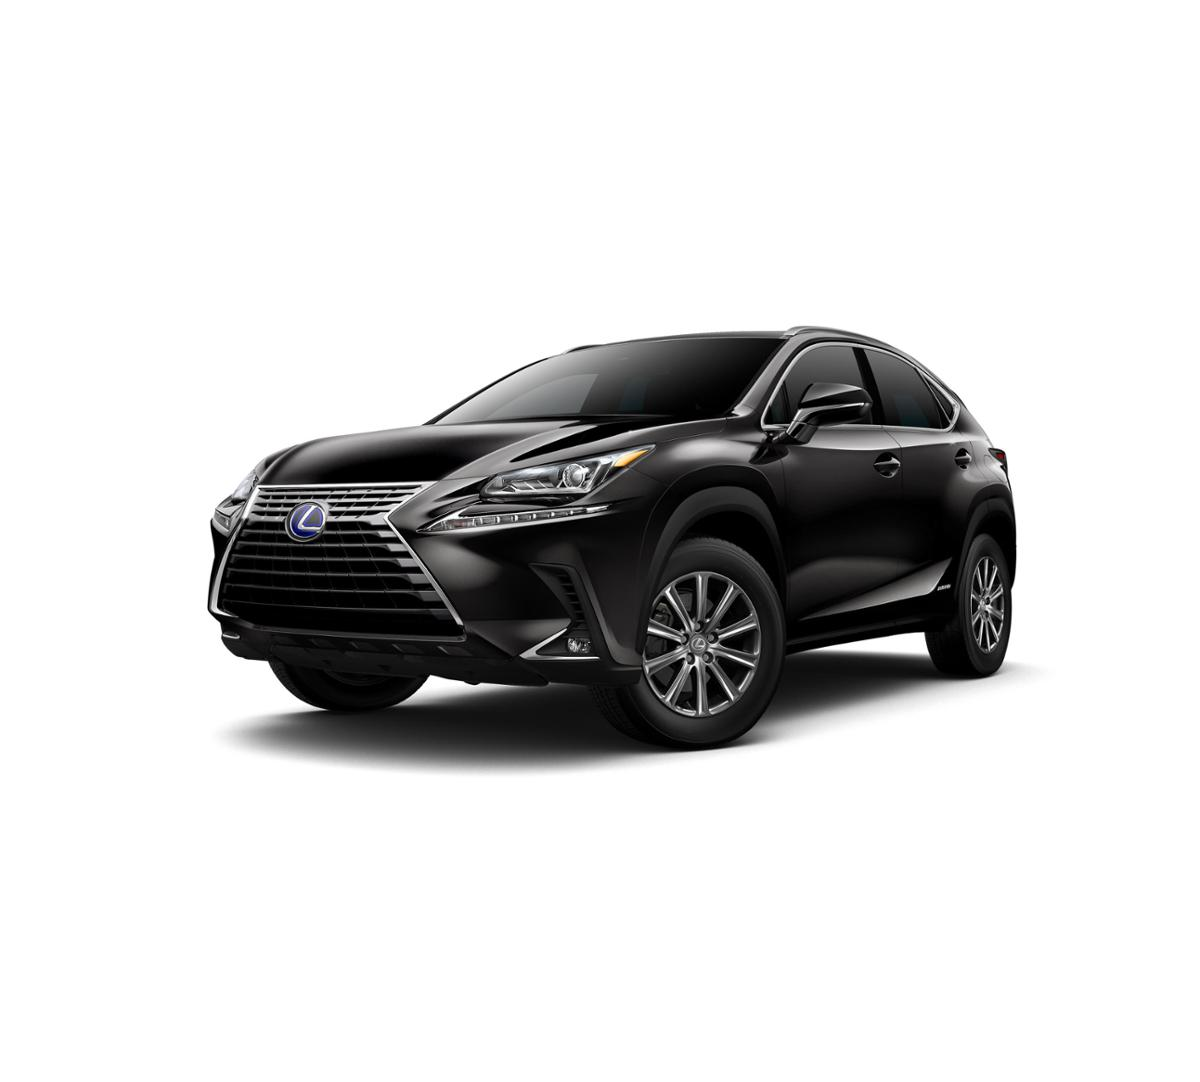 2018 Lexus NX 300h Vehicle Photo in Mission Viejo, CA 92692